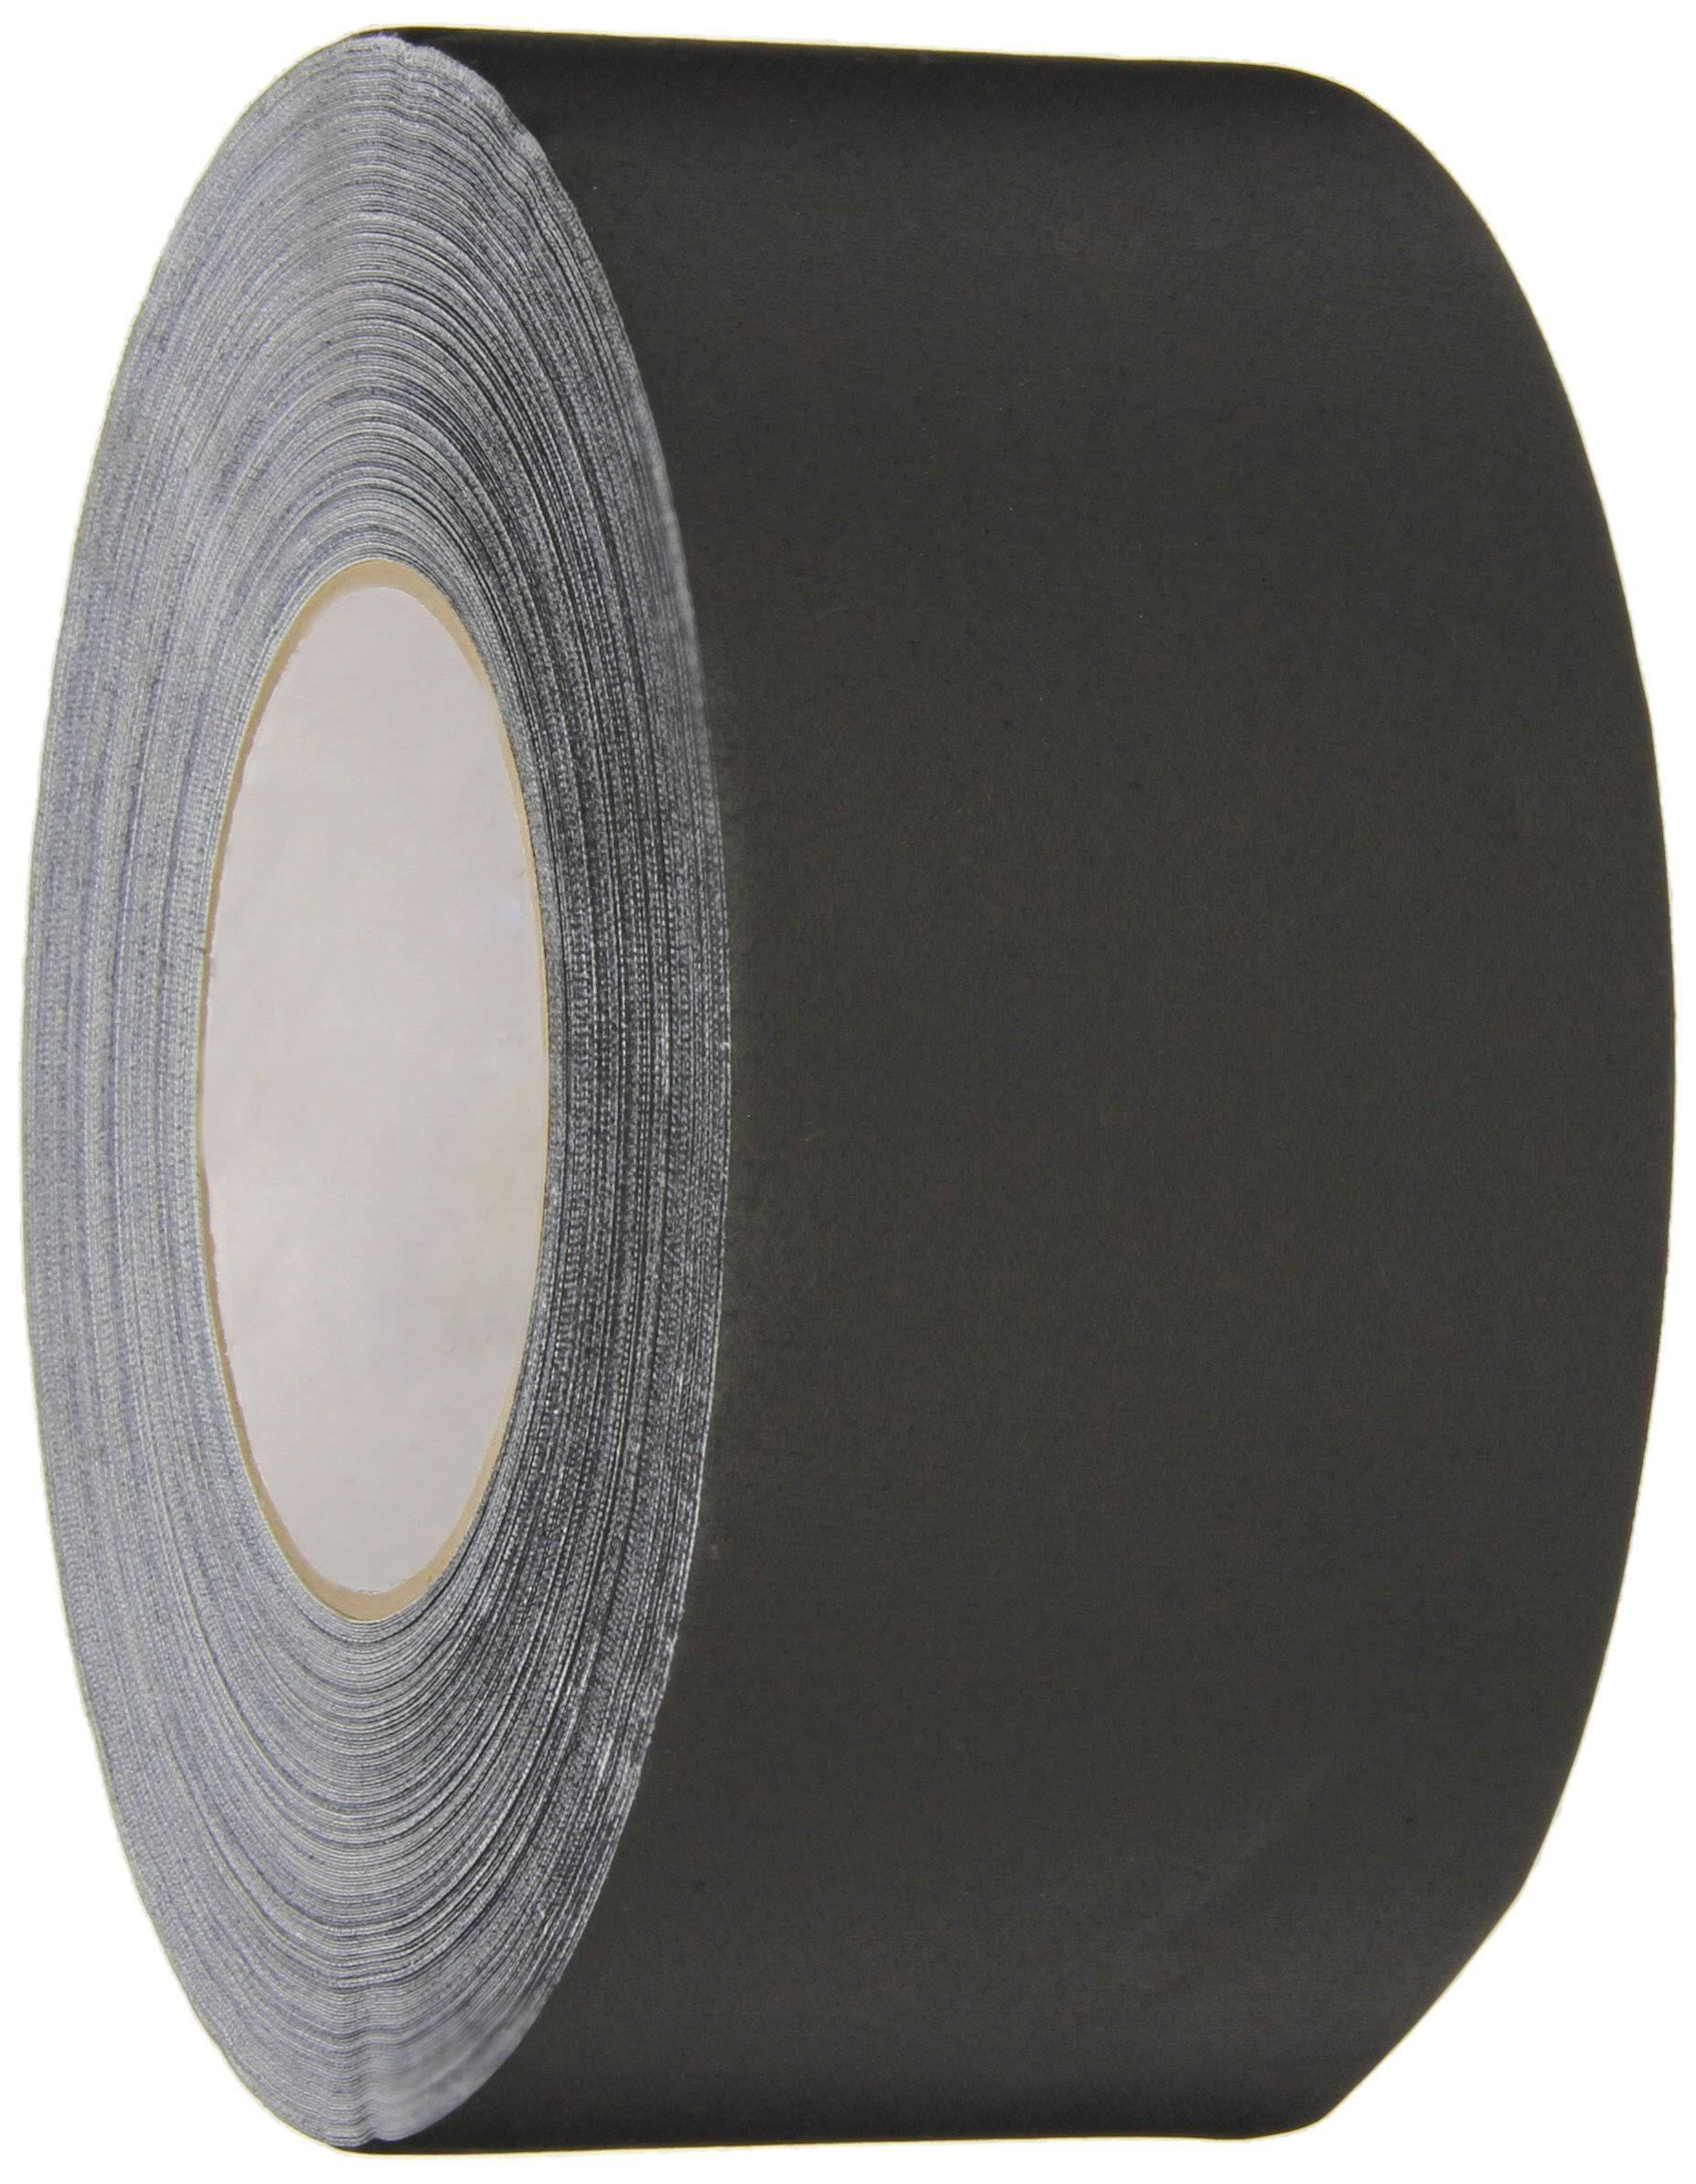 Polyken Vinyl Coated Cloth Premium Gaffer's Tape - 11.5mil x72mm x50m